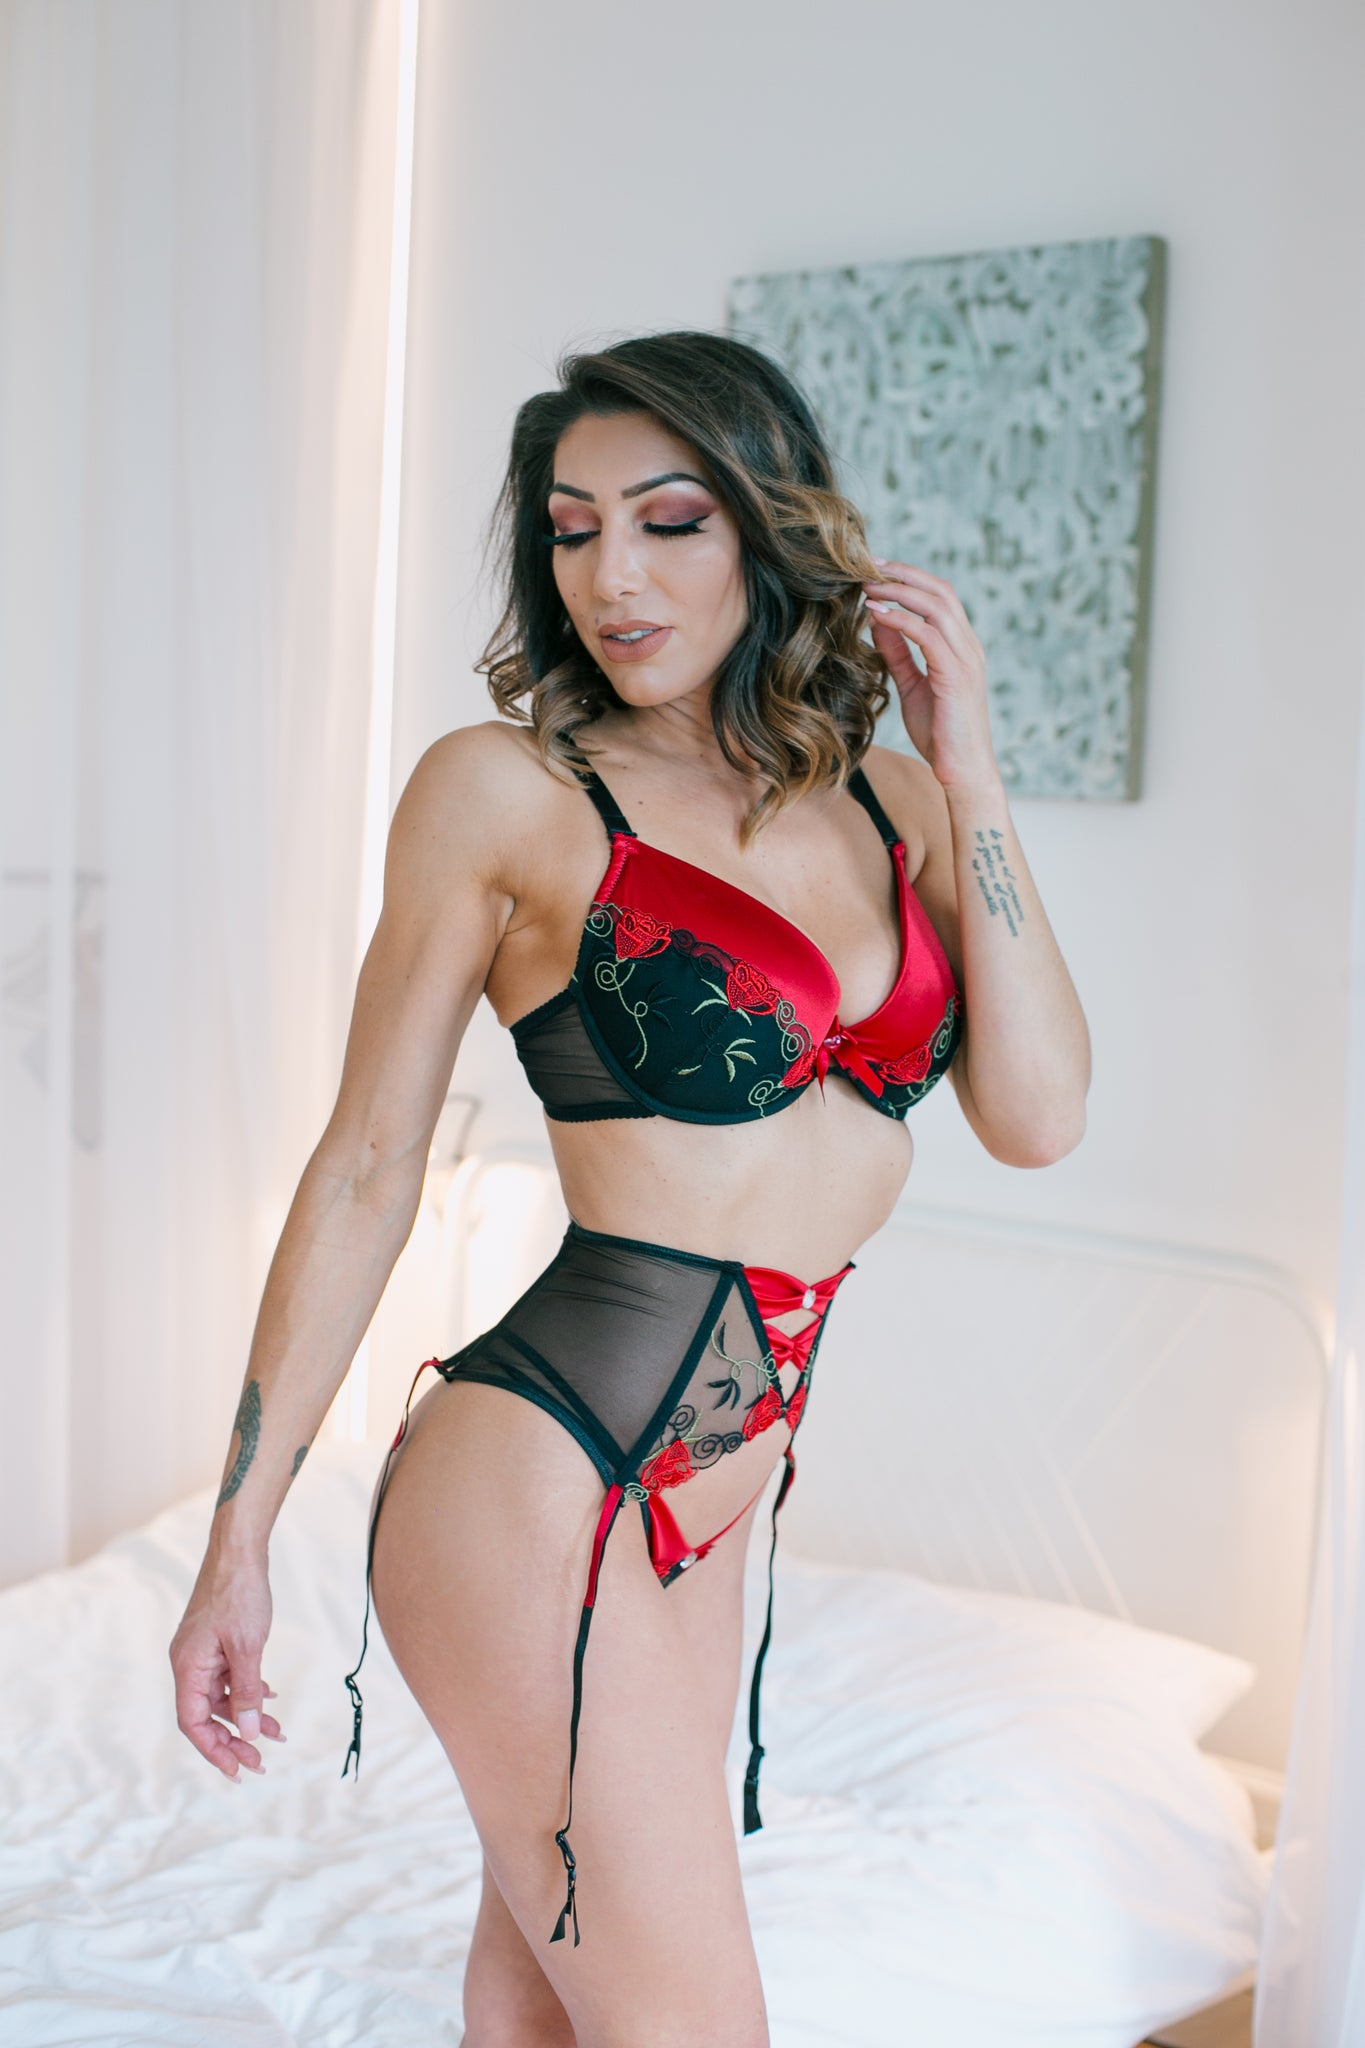 The Rufina black suspender belt is a gorgeous design with adjustable suspender straps. Beautiful red satin lace has been added to the suspender straps which contrast with the delicate lace and floral embroidery on the suspender belt. Matching bra, thong and brief sold separately.